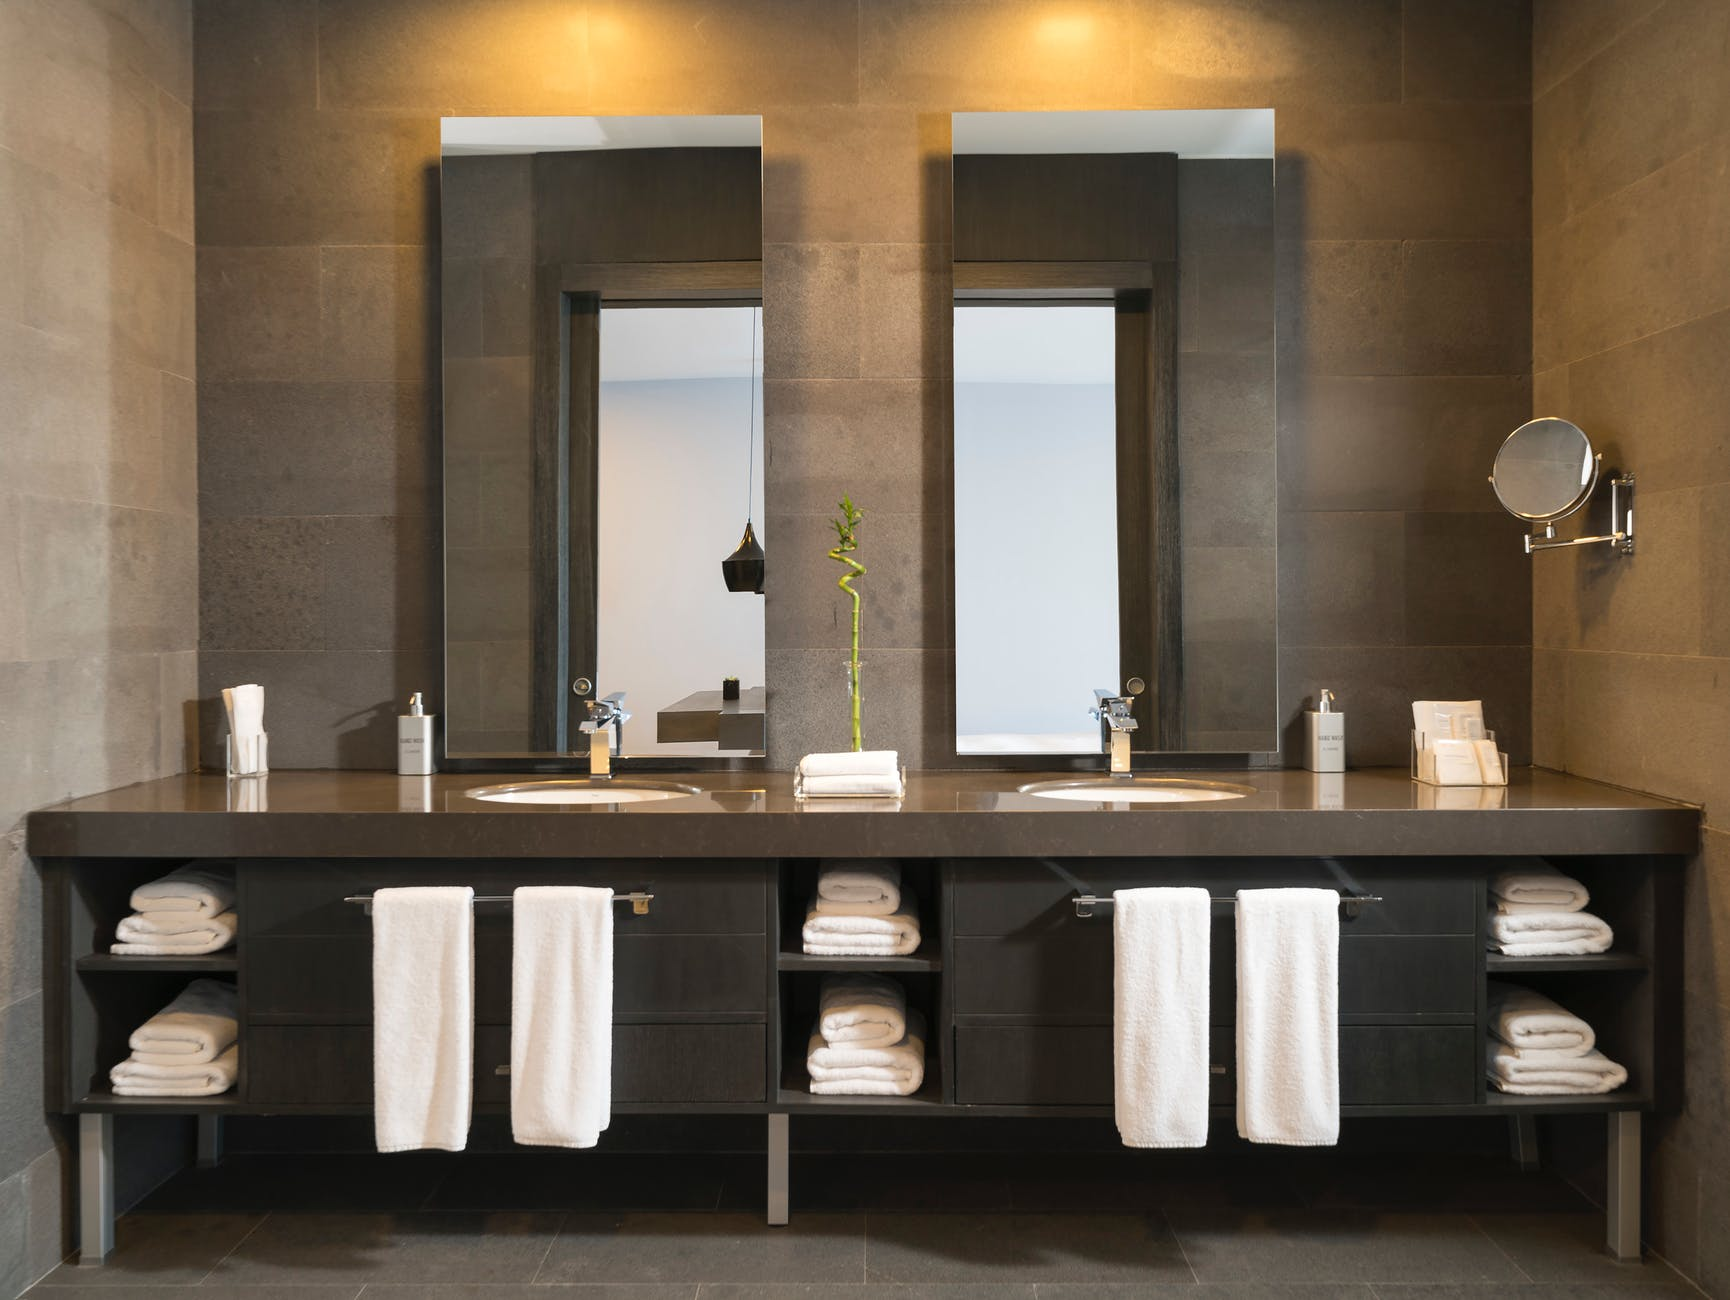 Choosing The Right Vanity For Your Bathroom